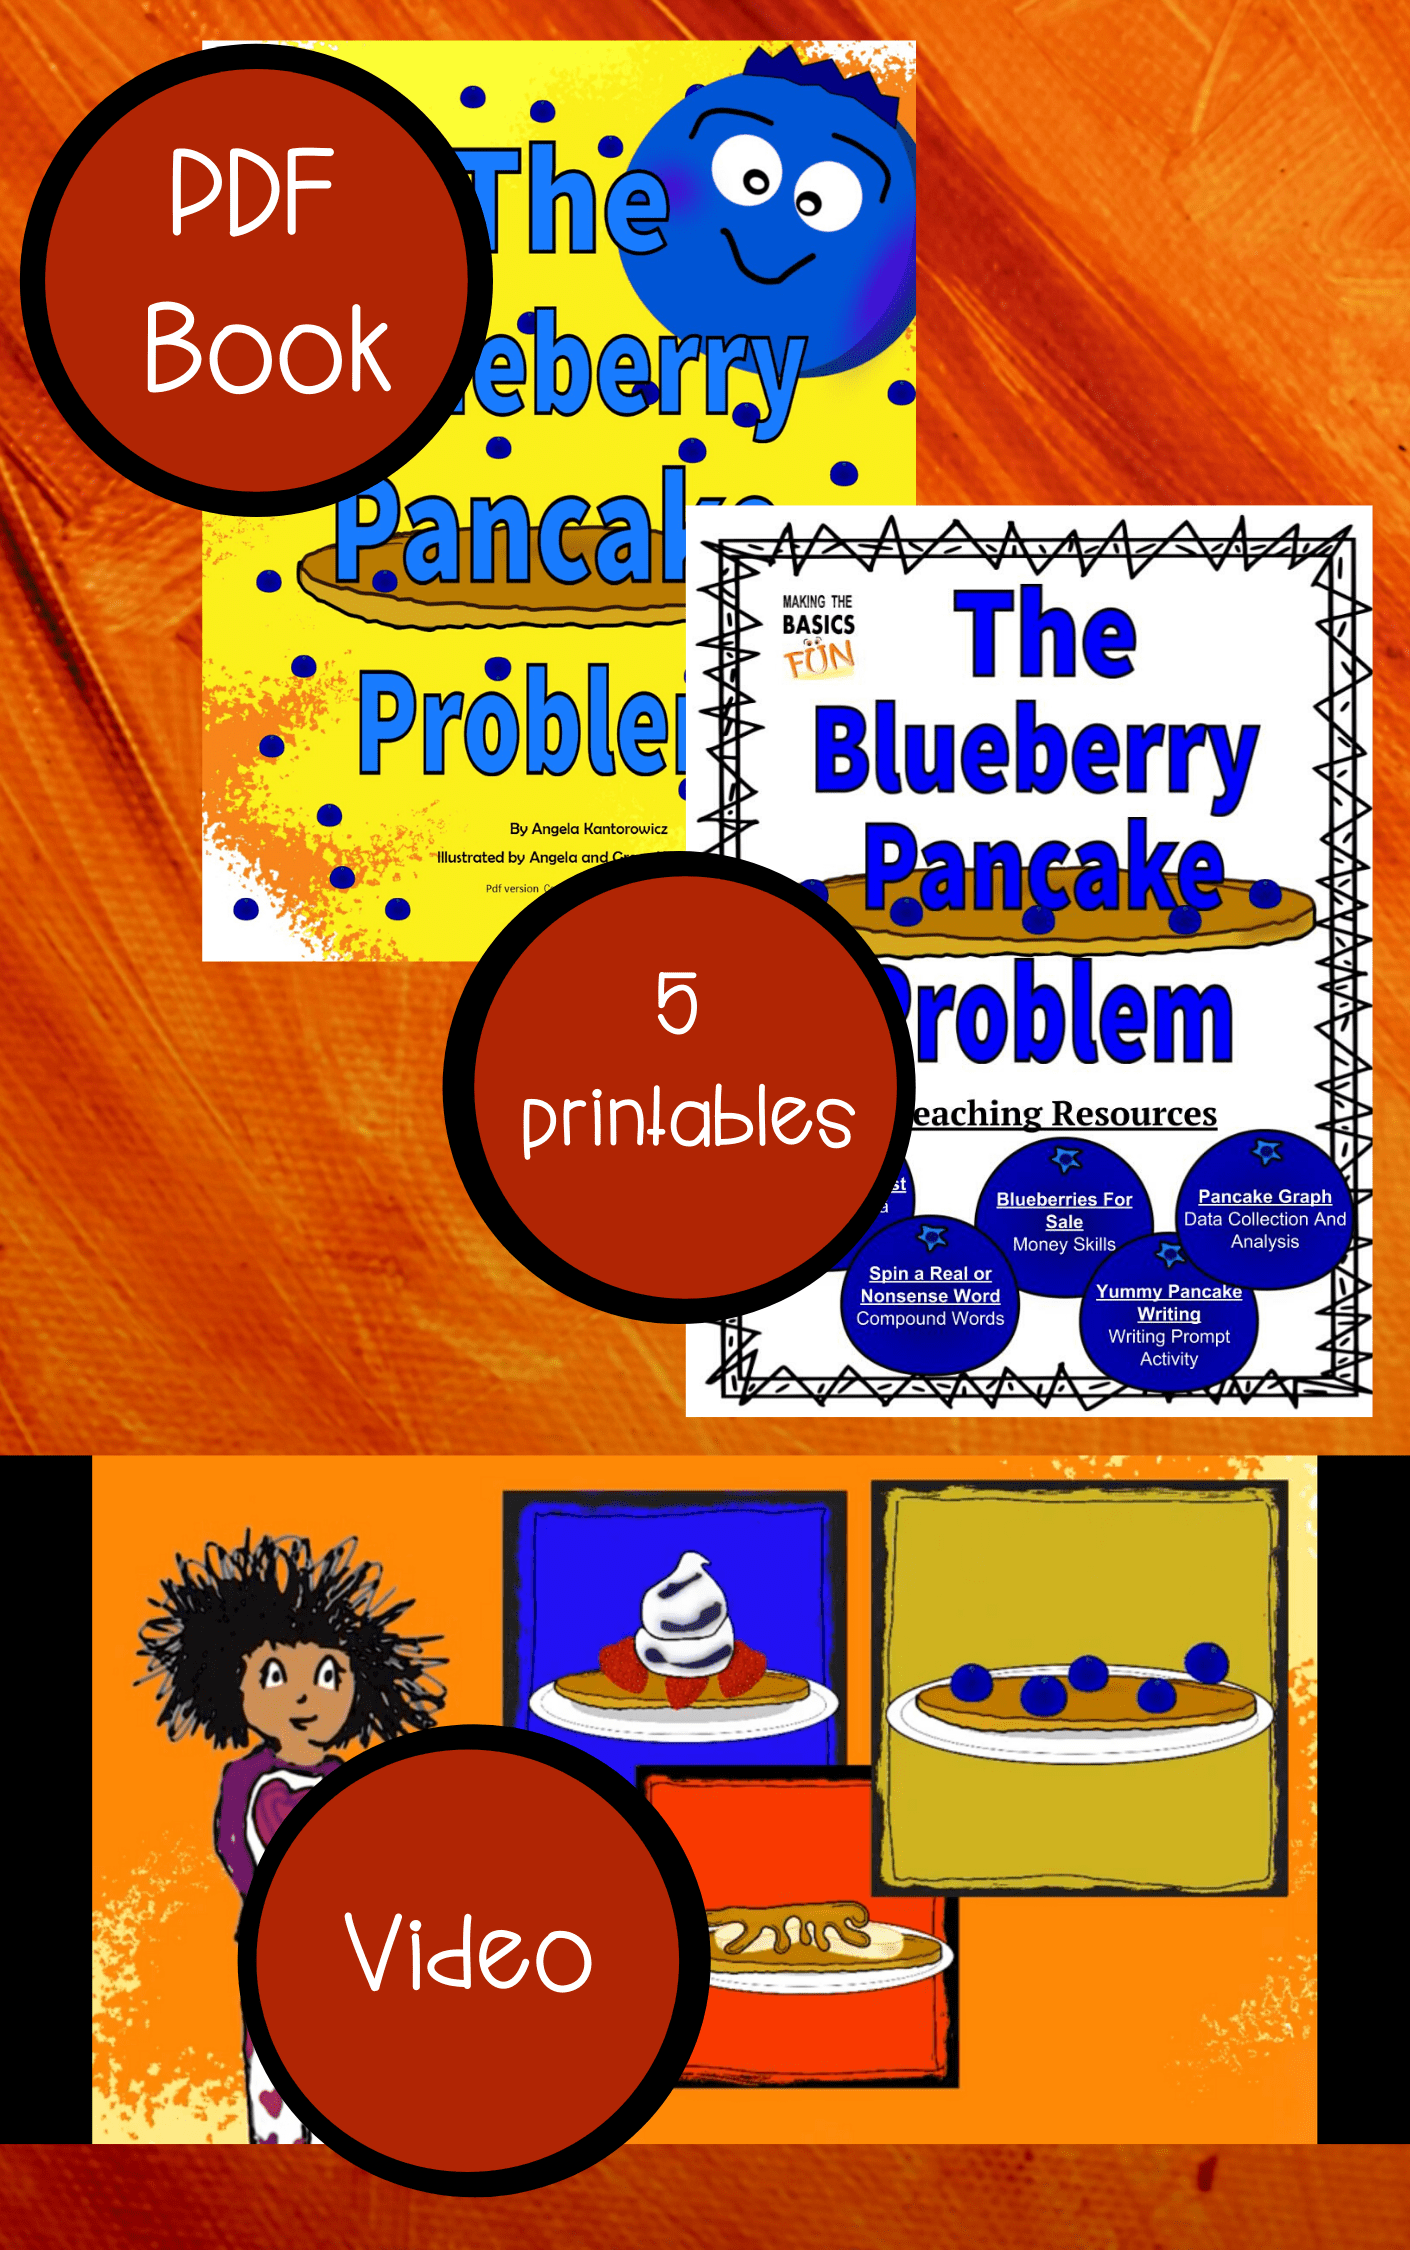 The Blueberry Pancake Problem Resource Pack Graphic